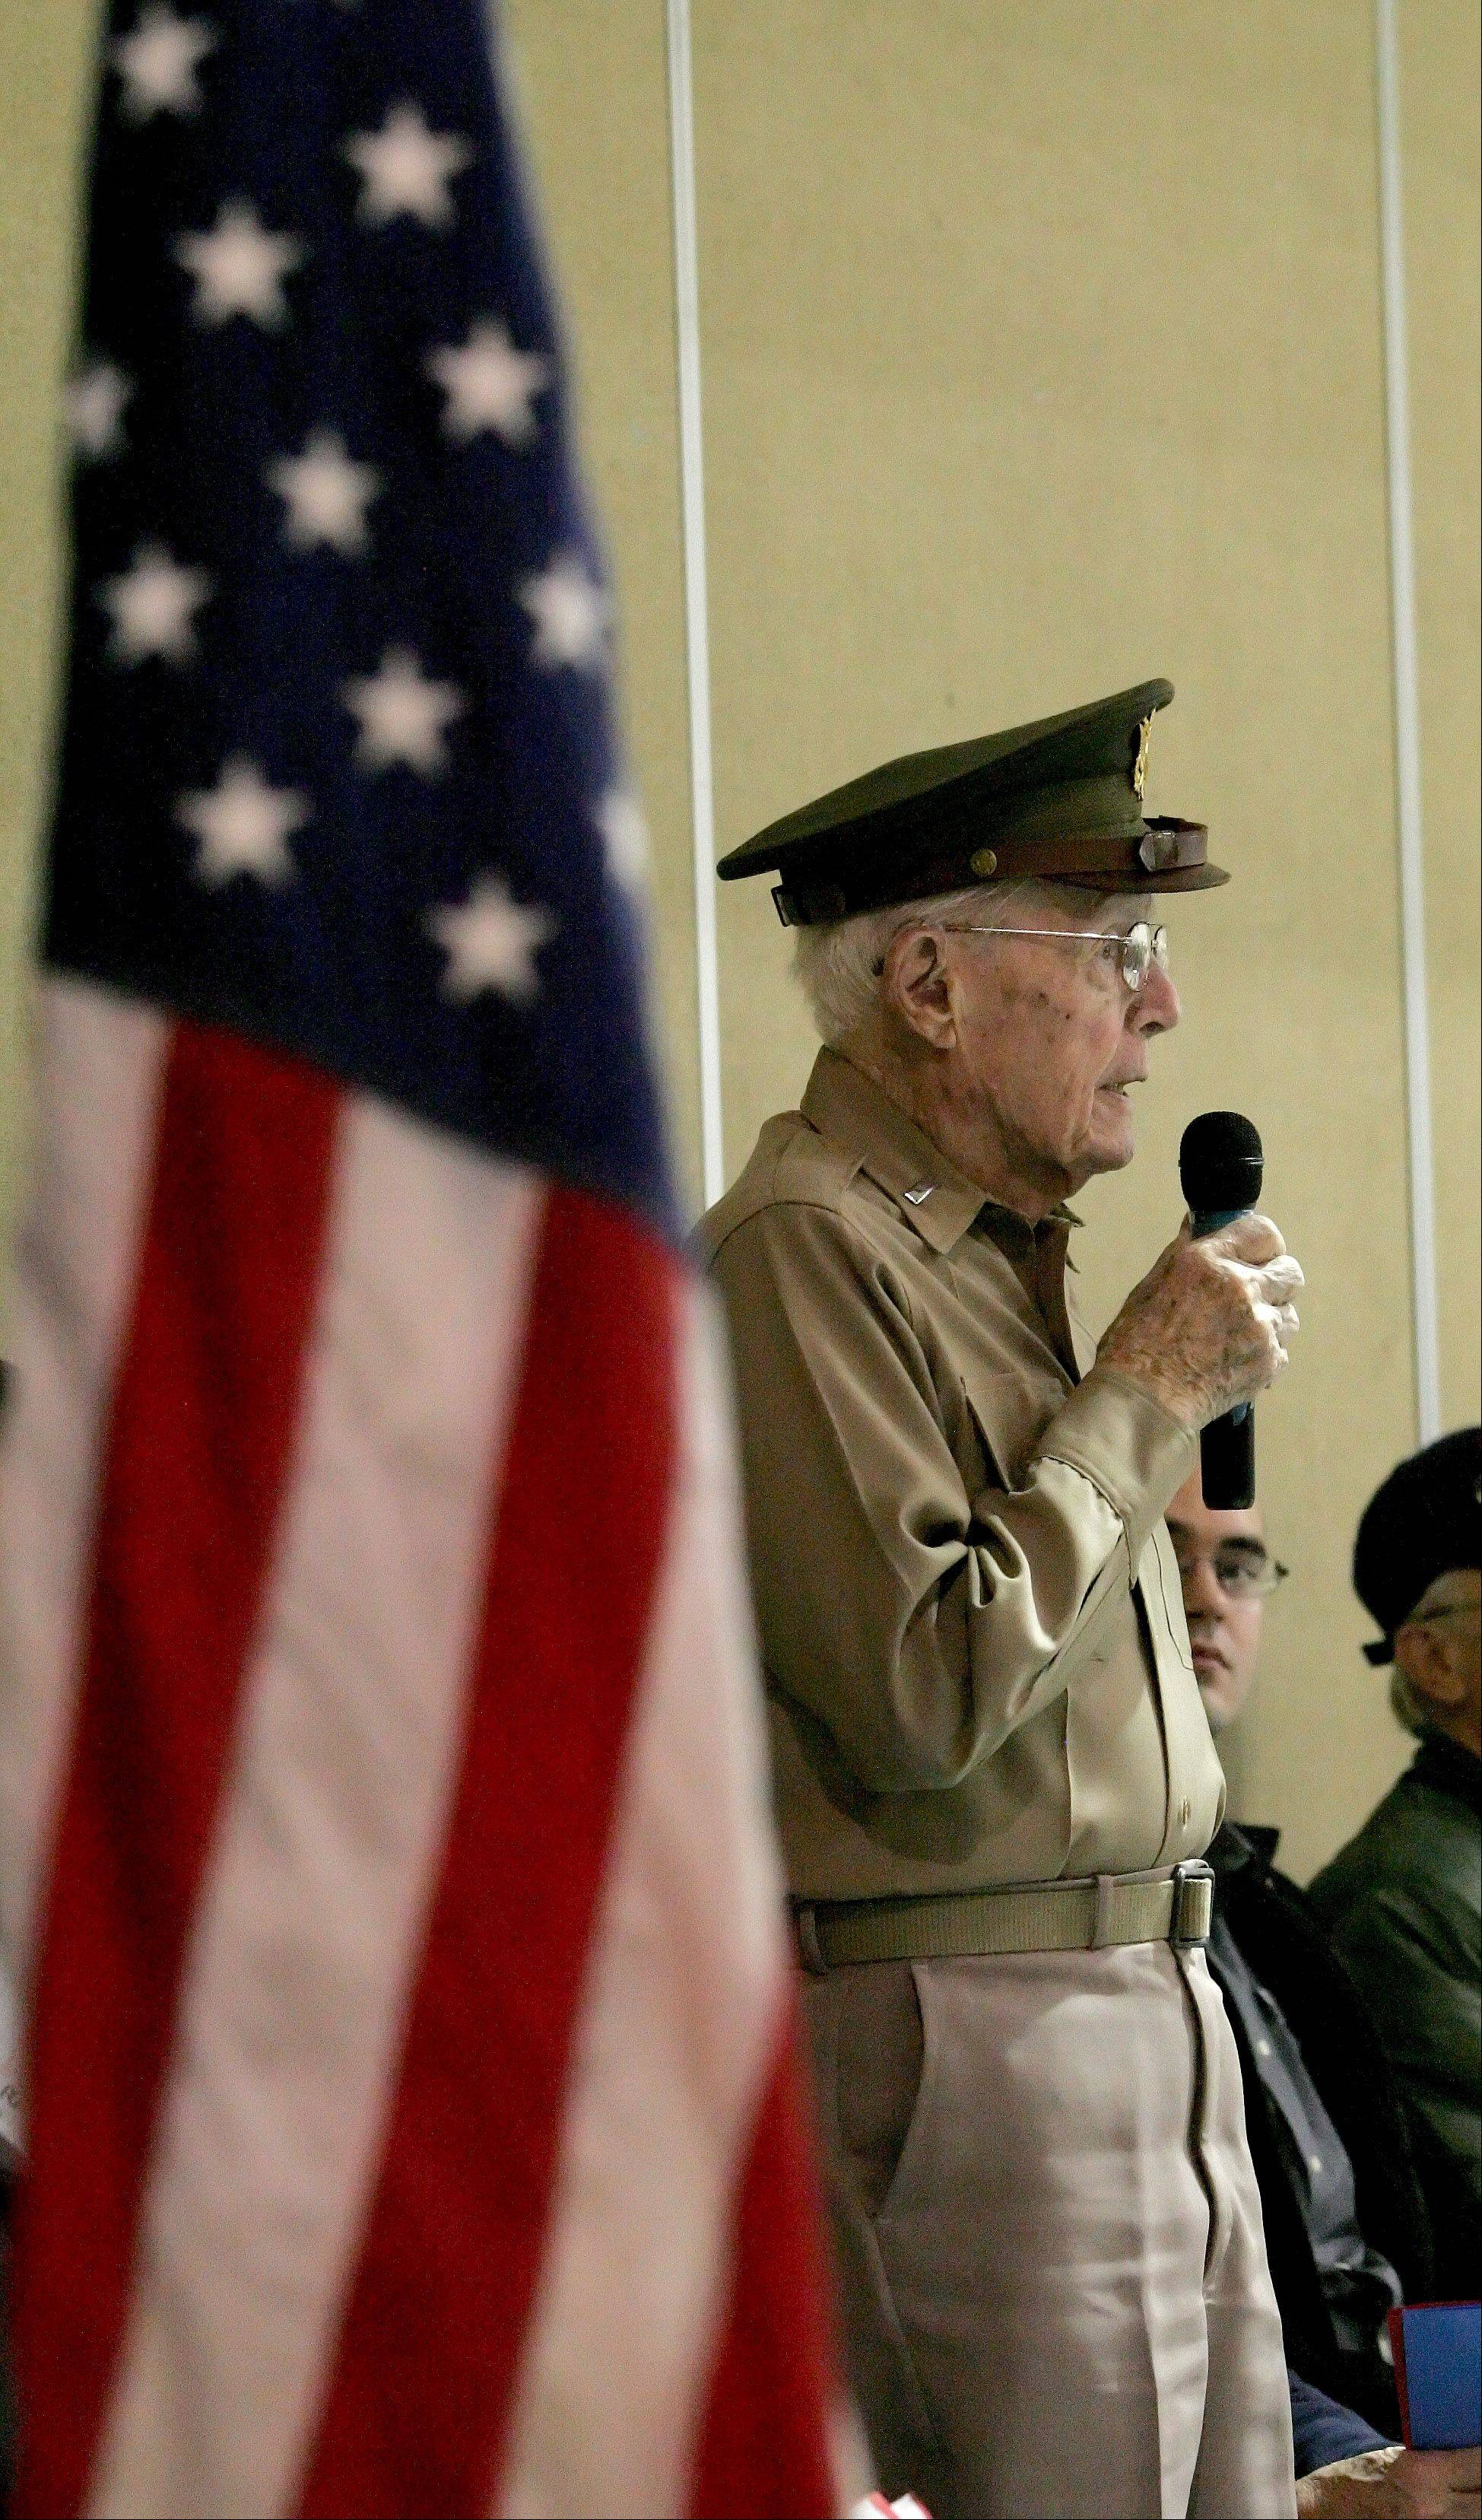 WWII veteran, George Kleinwachter of Warrenville, introduces himself during a Veterans Day program at Johnson Elementary School in Warrenville.